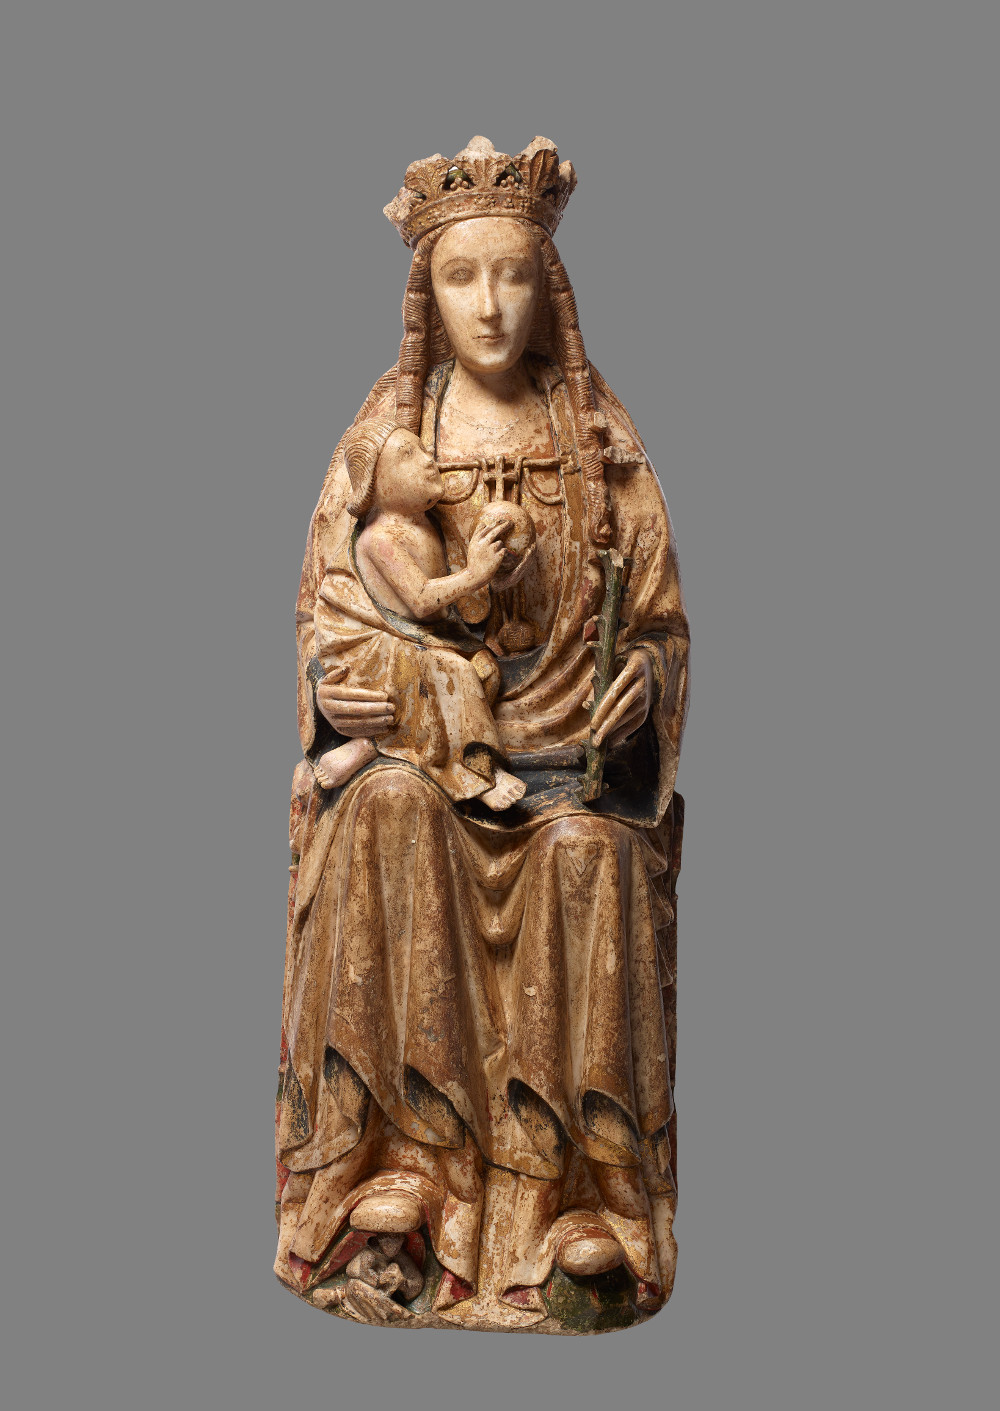 Virgin and Child - AlabasterAD 1450–1499United KingdomBritish Museum                        Catholics believe the Virgin Mary is the mother of Jesus, and therefore the mother of god. Mary's role is to offer compassion and intercede on behalf of those who pray to her. This Virgin, crowned and enthroned, holds in her right arm the figure of Christ. He gazes lovingly at the face of his mother, while she directs her gaze to the onlooker.The large size of this figure suggests that it occupied a prominent space in a church.